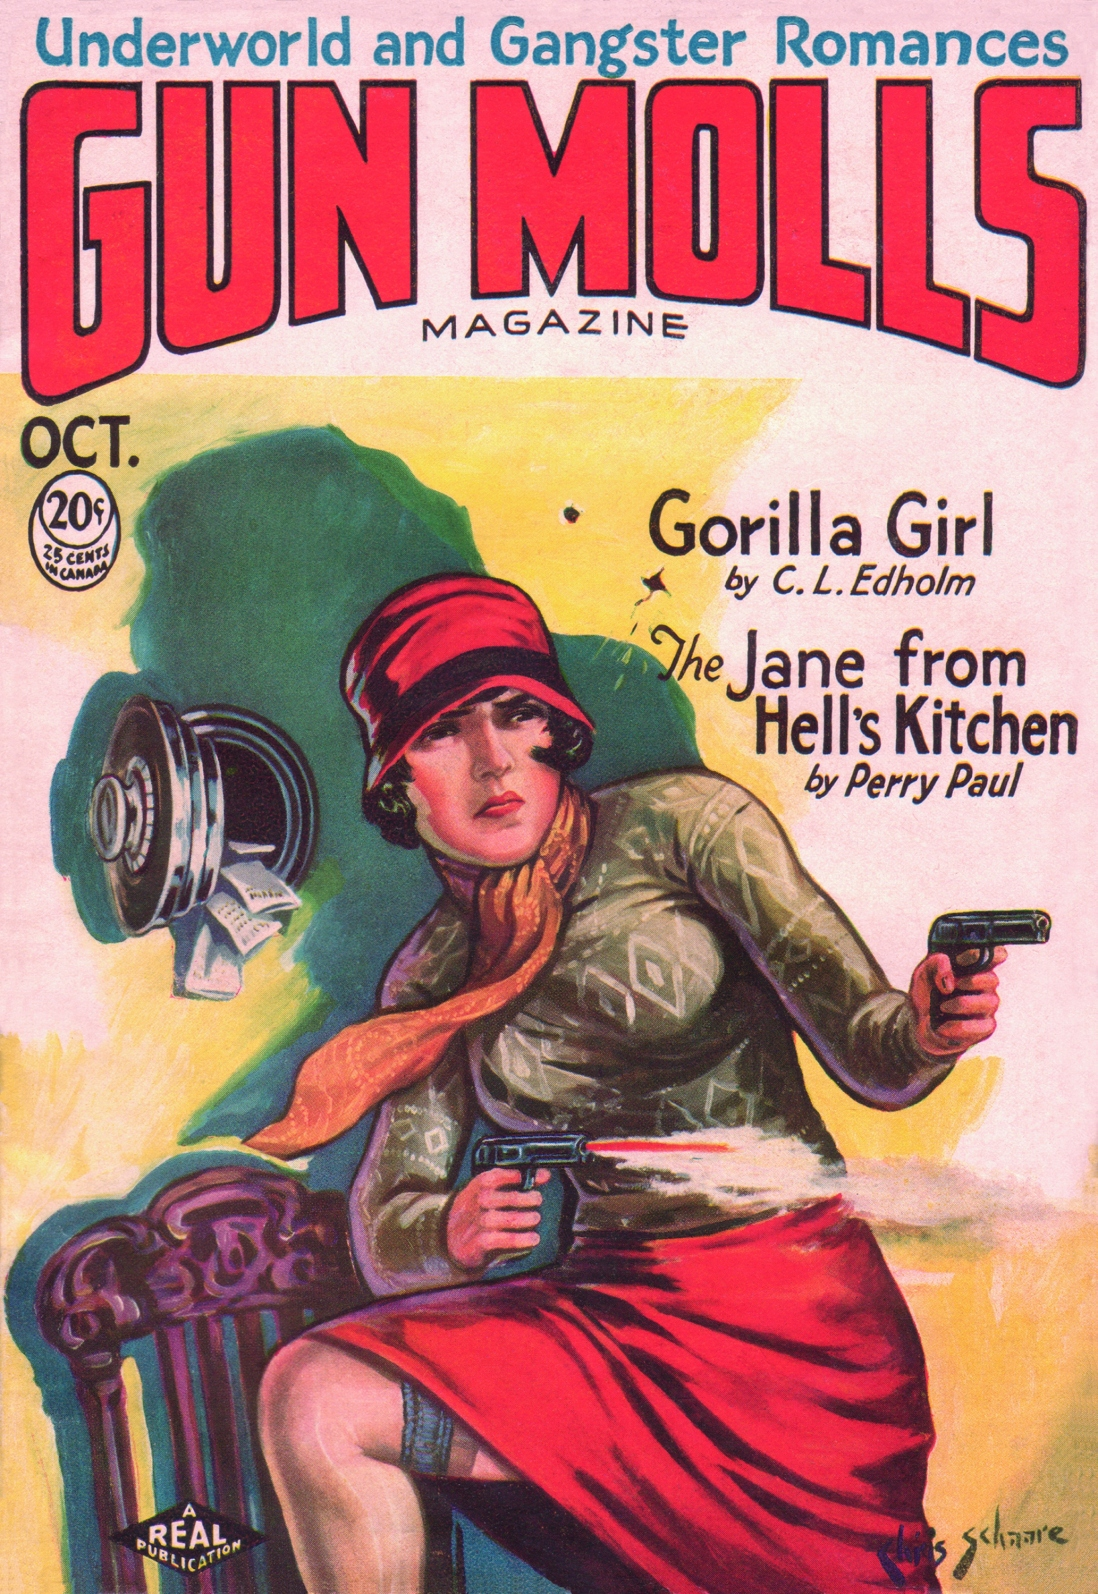 Illustrated magazine cover showing a lady with her foot on a chair firing a gun from each hand.